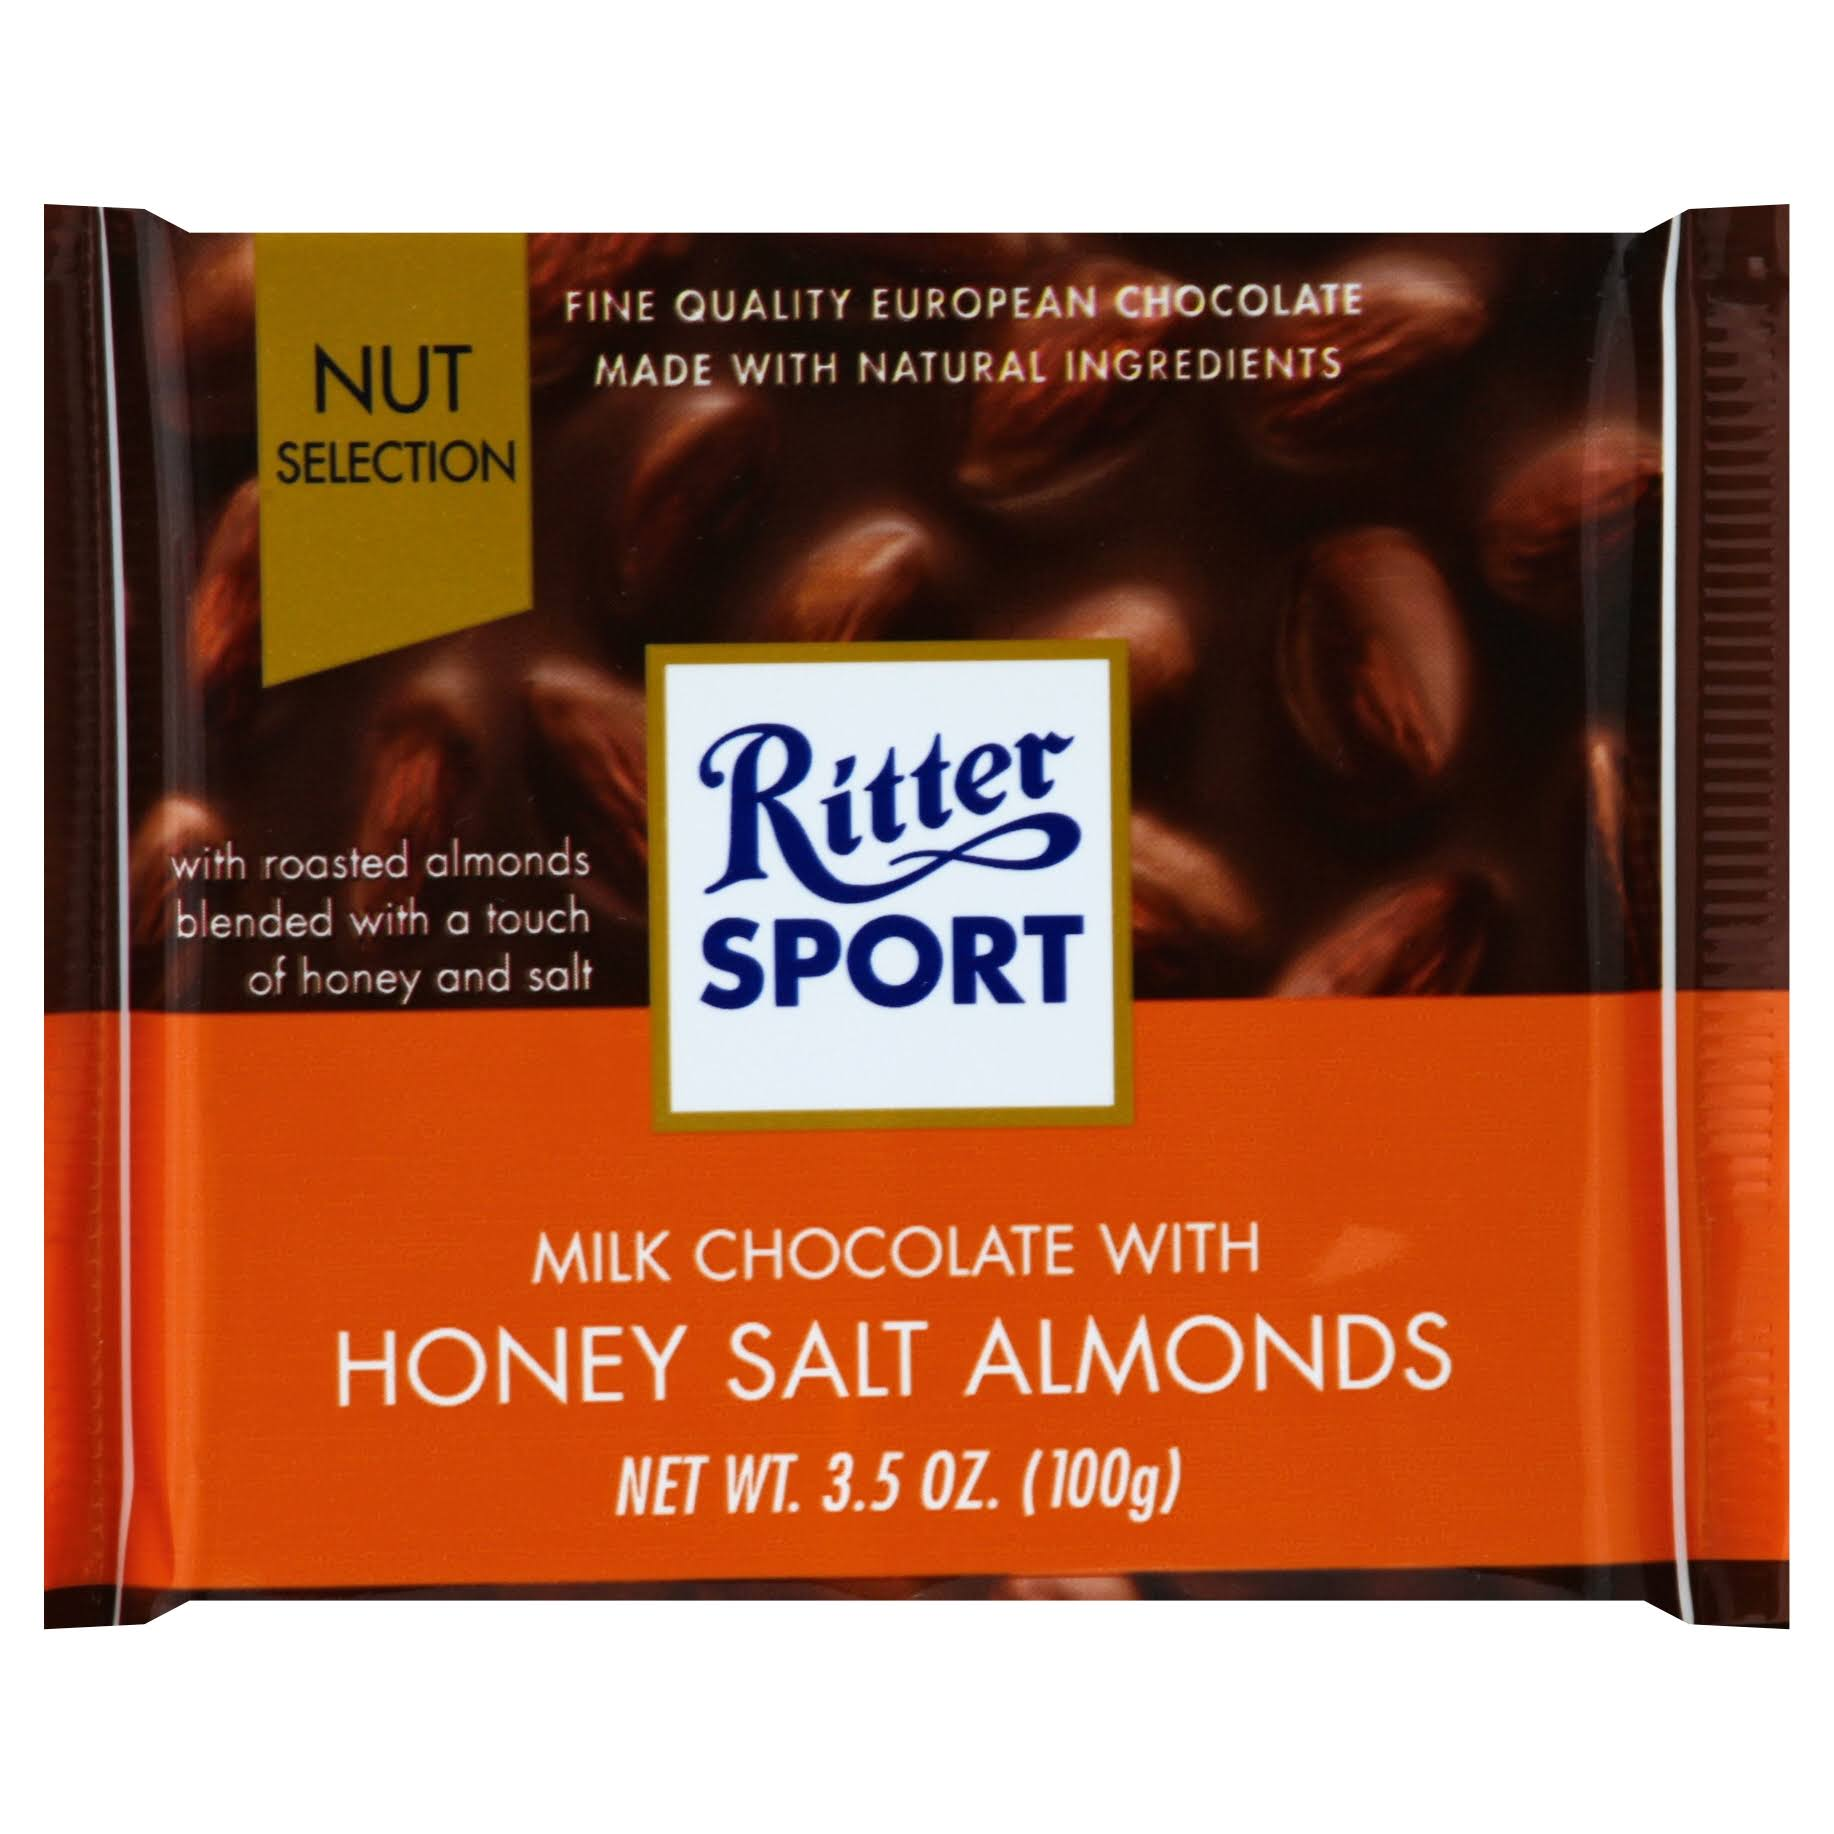 Ritter Sport Milk Chocolate, with Honey Salt Almonds, Knick-Pack - 3.5 oz